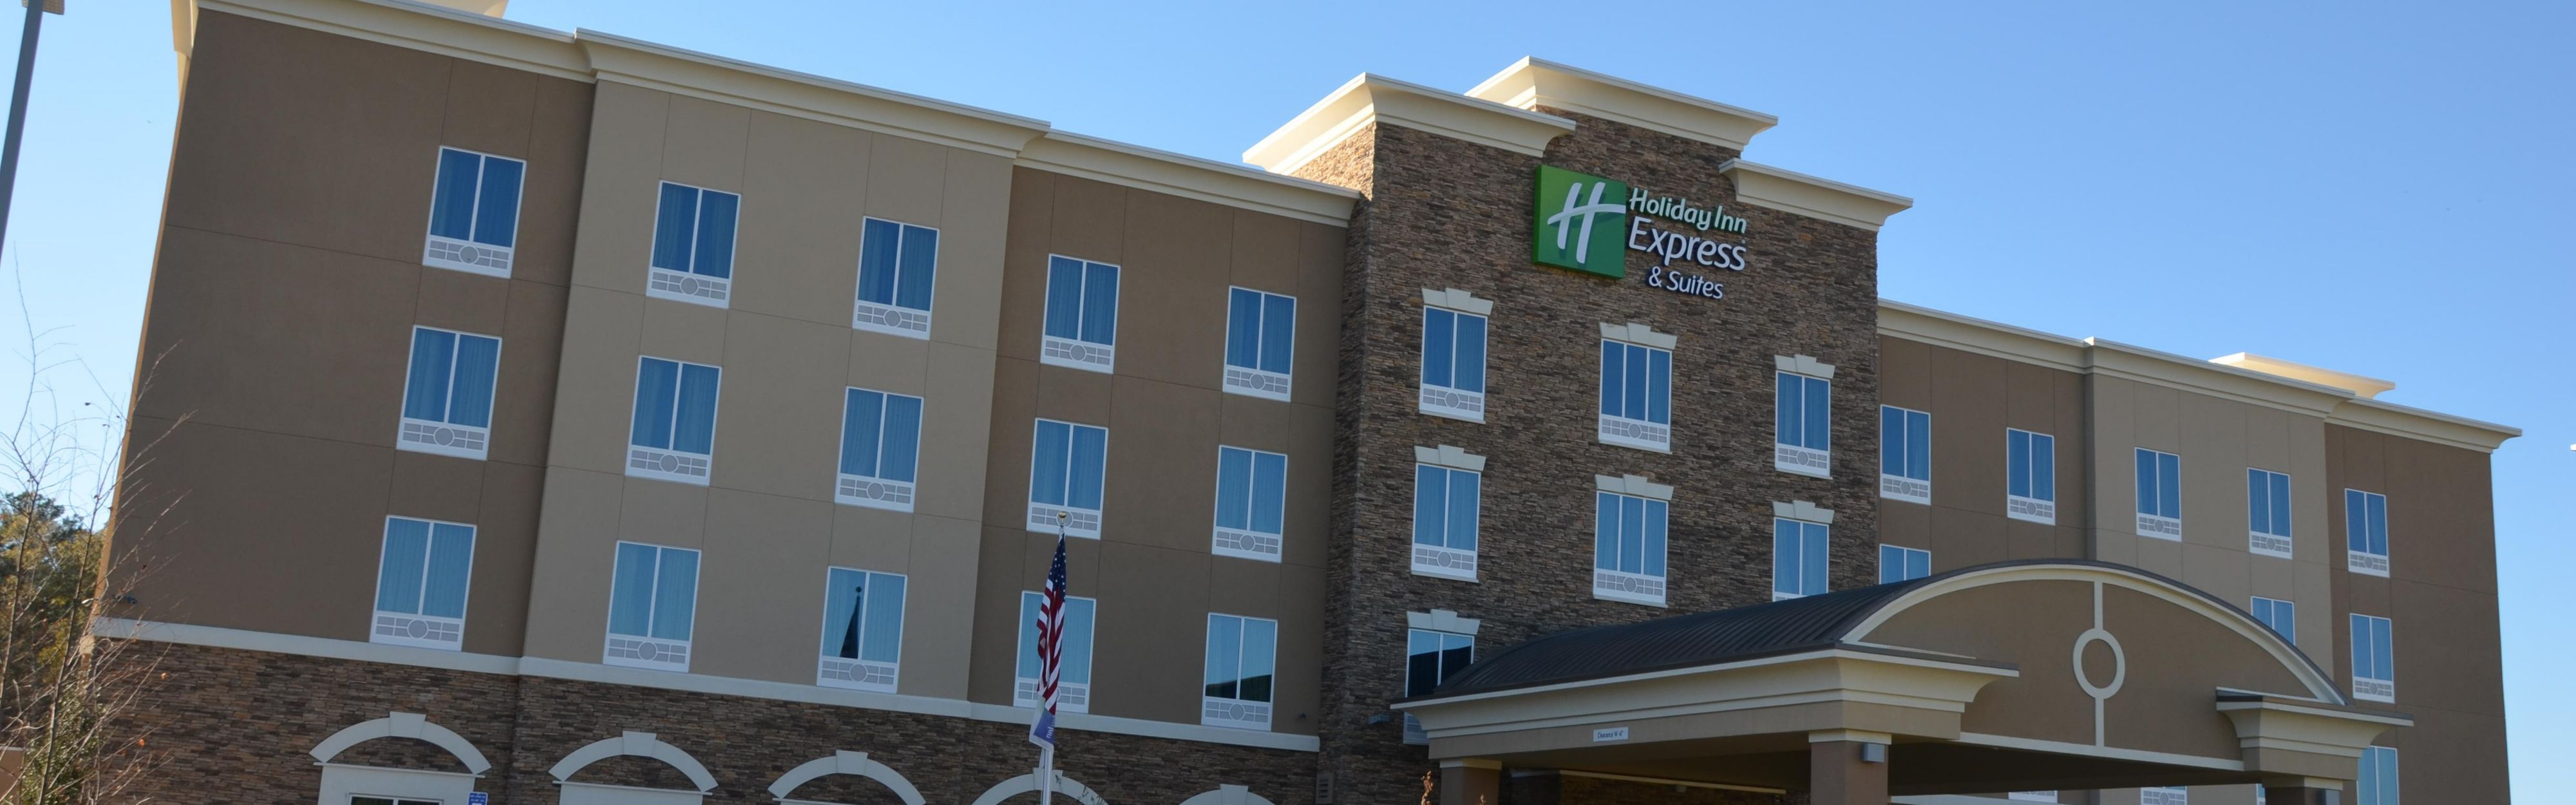 Holiday Inn Express & Suites Albany image 0